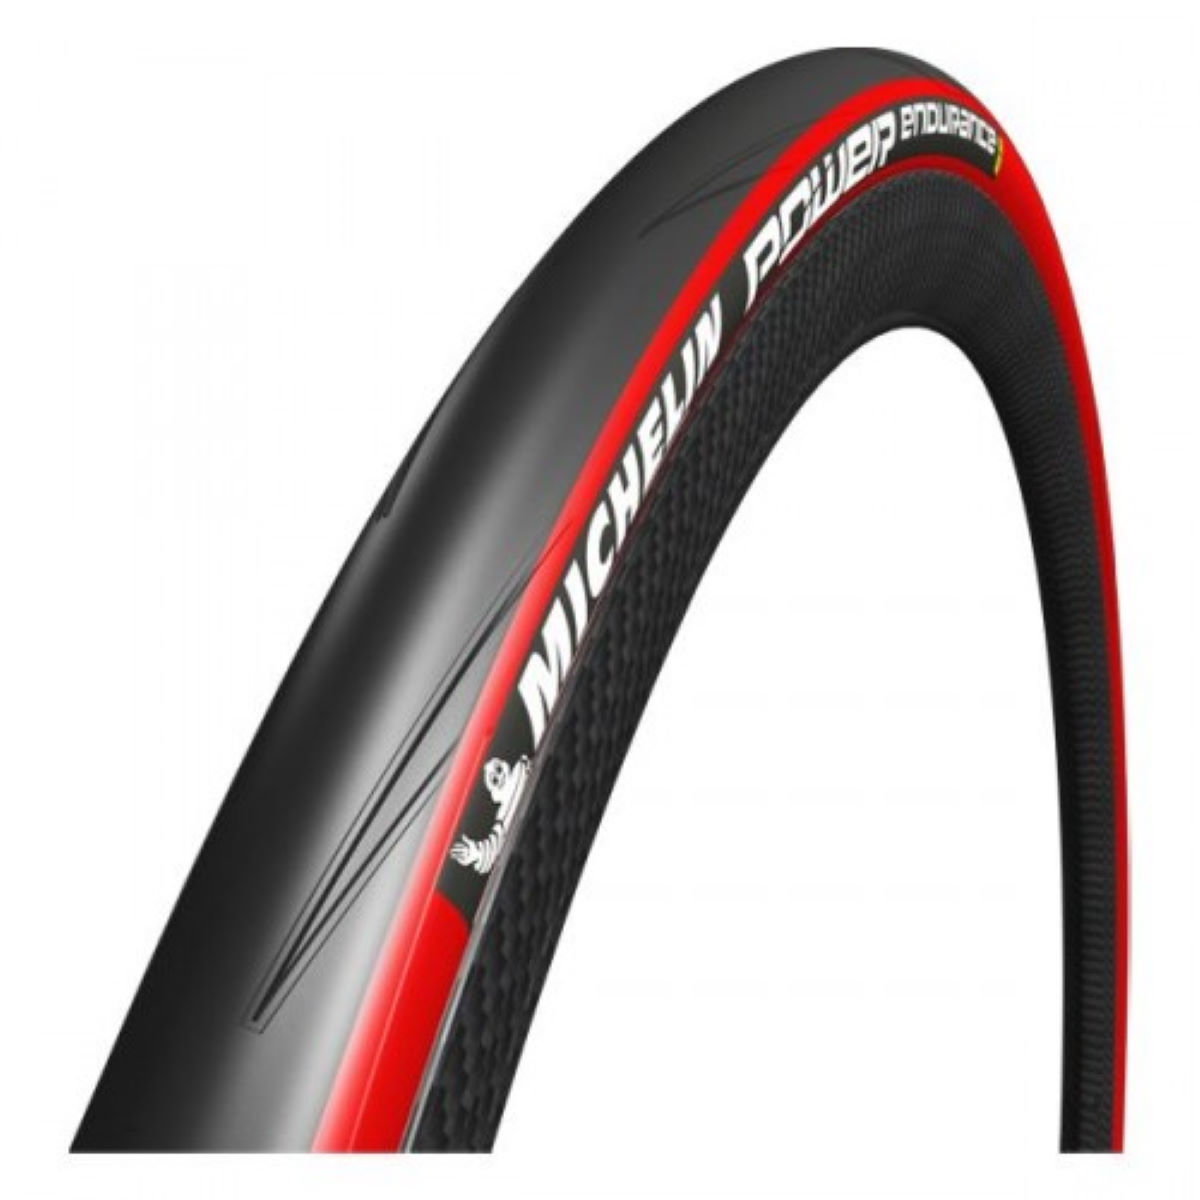 Pneu souple de route Michelin Power Endurance (700 x 23 c) - 700 x 23c Rouge Pneus de compétition sur route